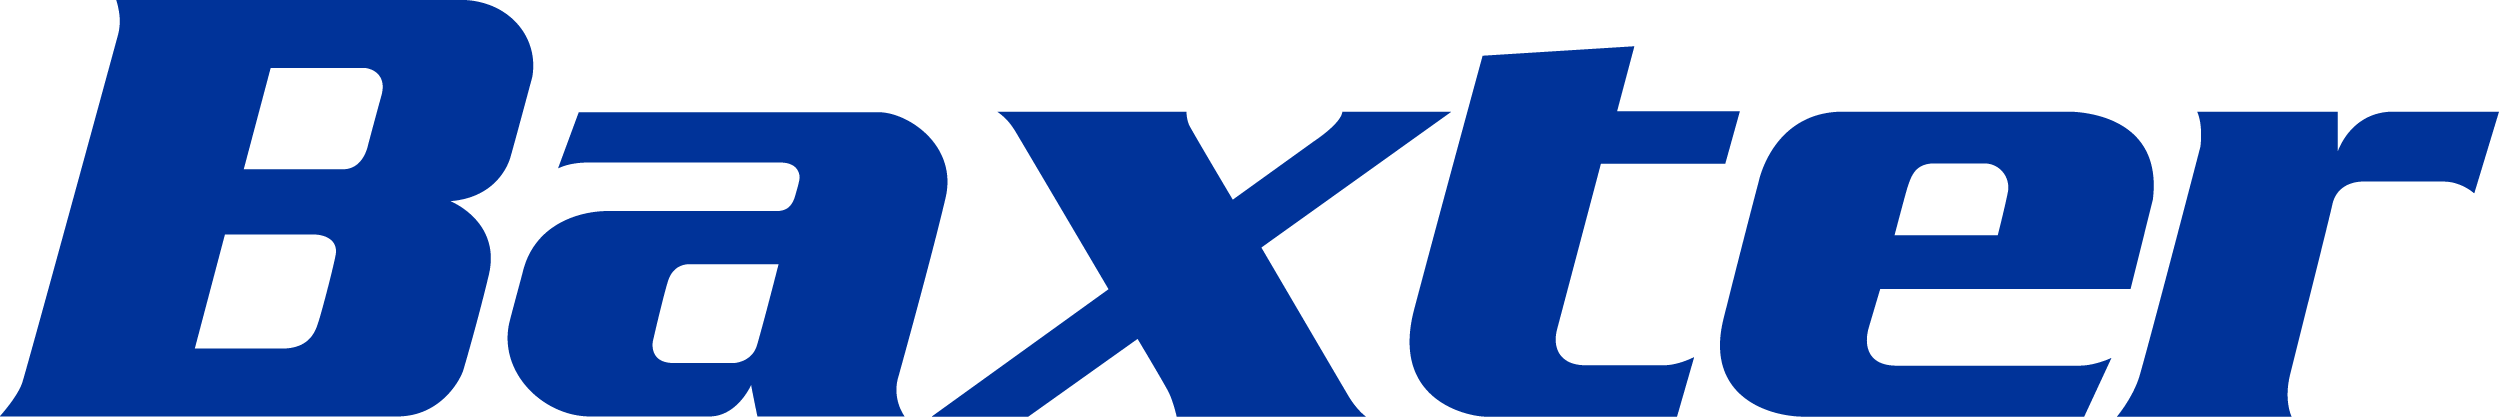 baxter_logo_wordmark600_blue_300dpi